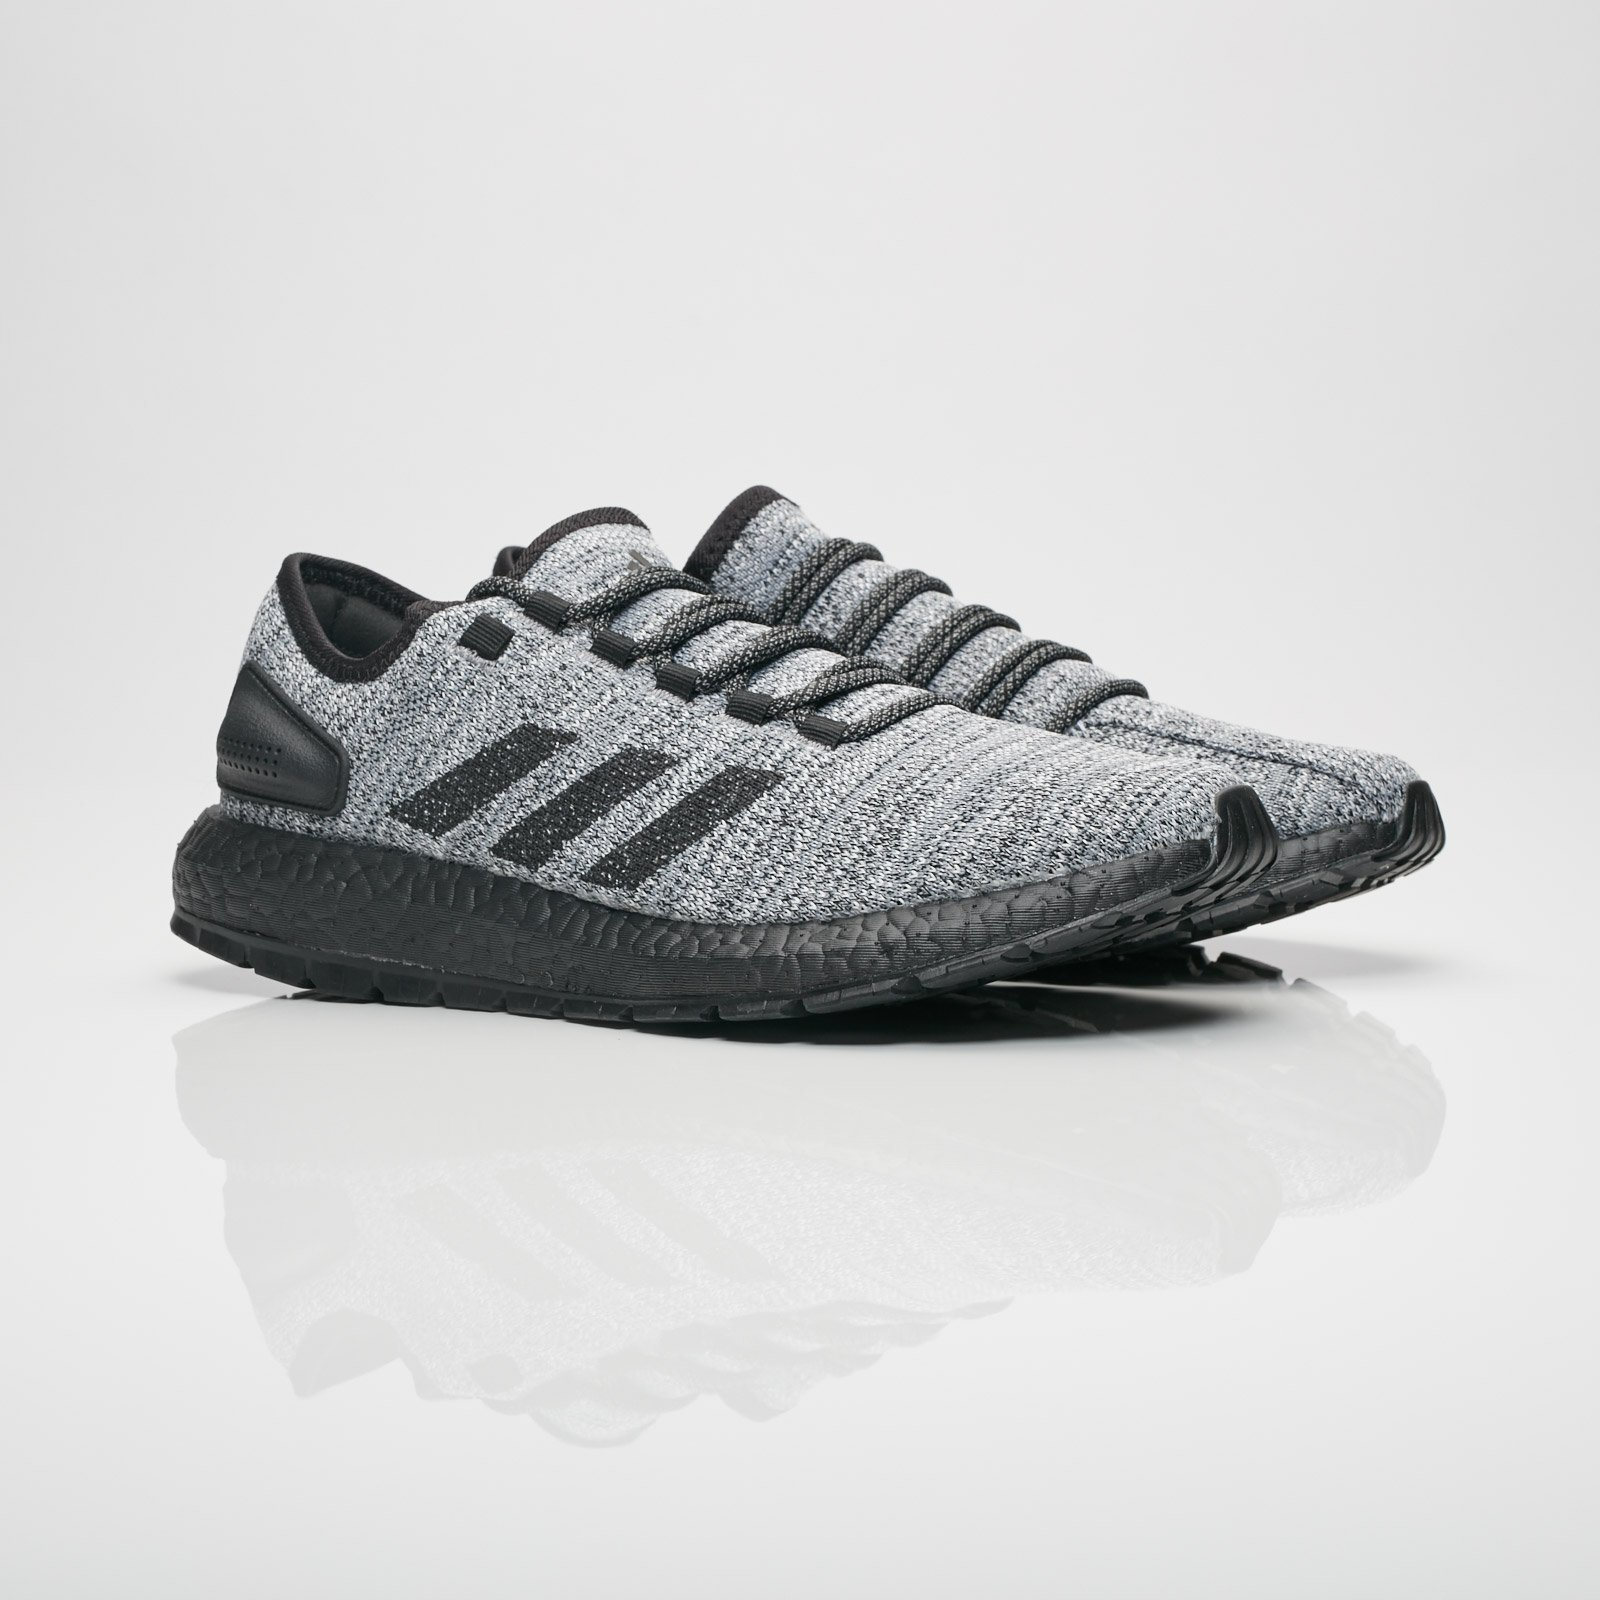 837b880123acef adidas Pure Boost All Terrain - Cg2989 - Sneakersnstuff